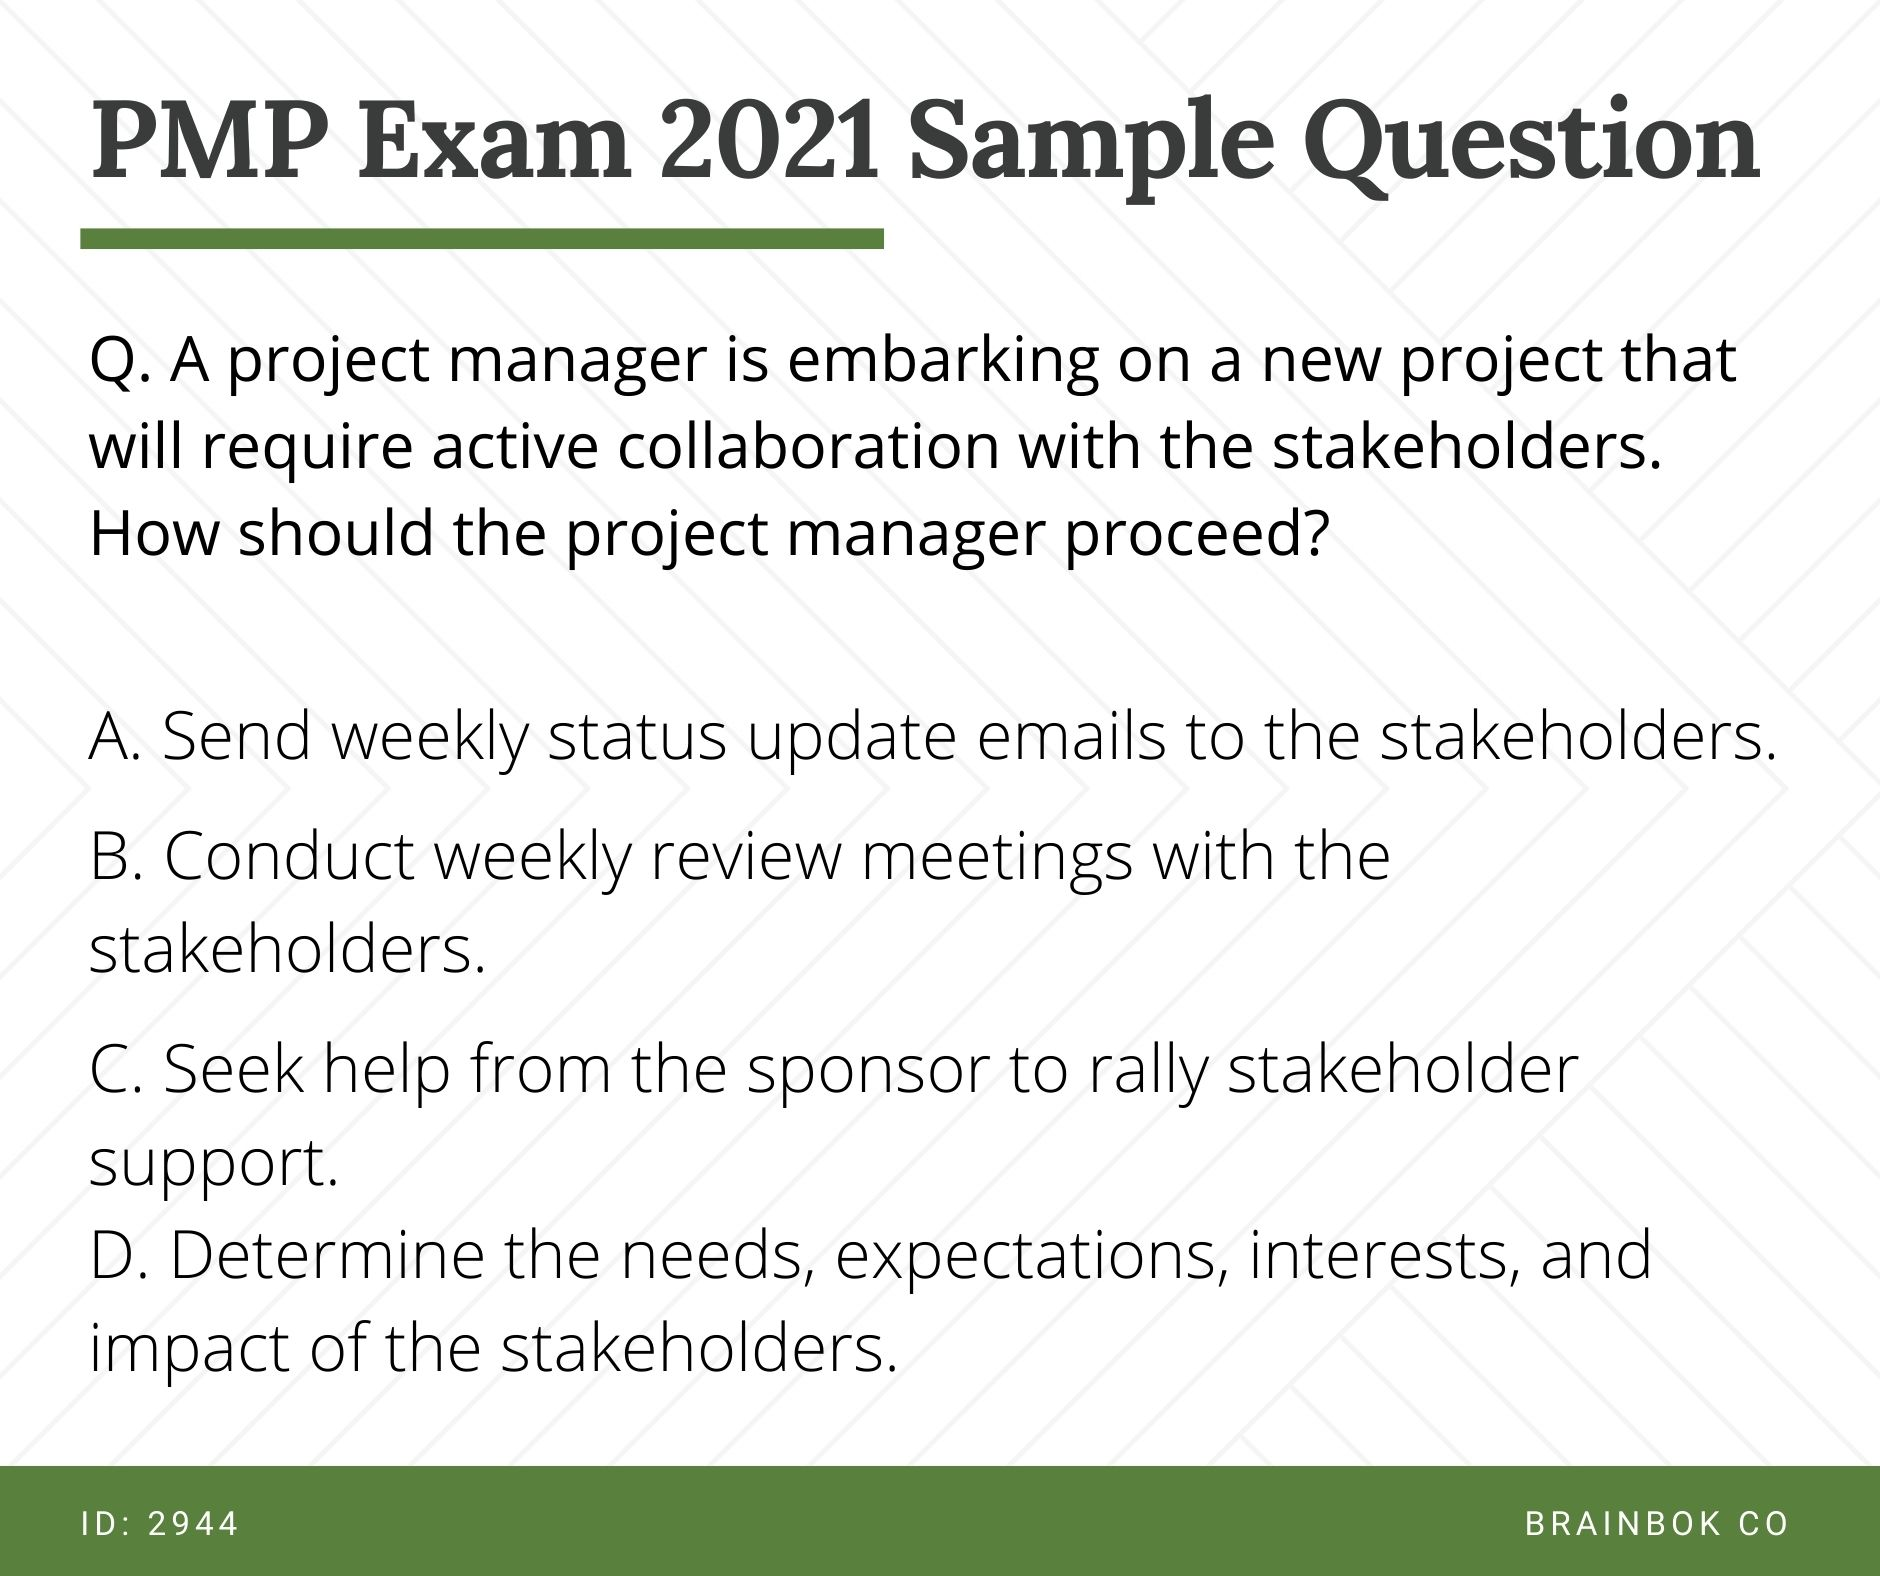 PMP Sample Question 2021 - PMP Sample Question - Project Manager needs active collaboration with the stakeholders